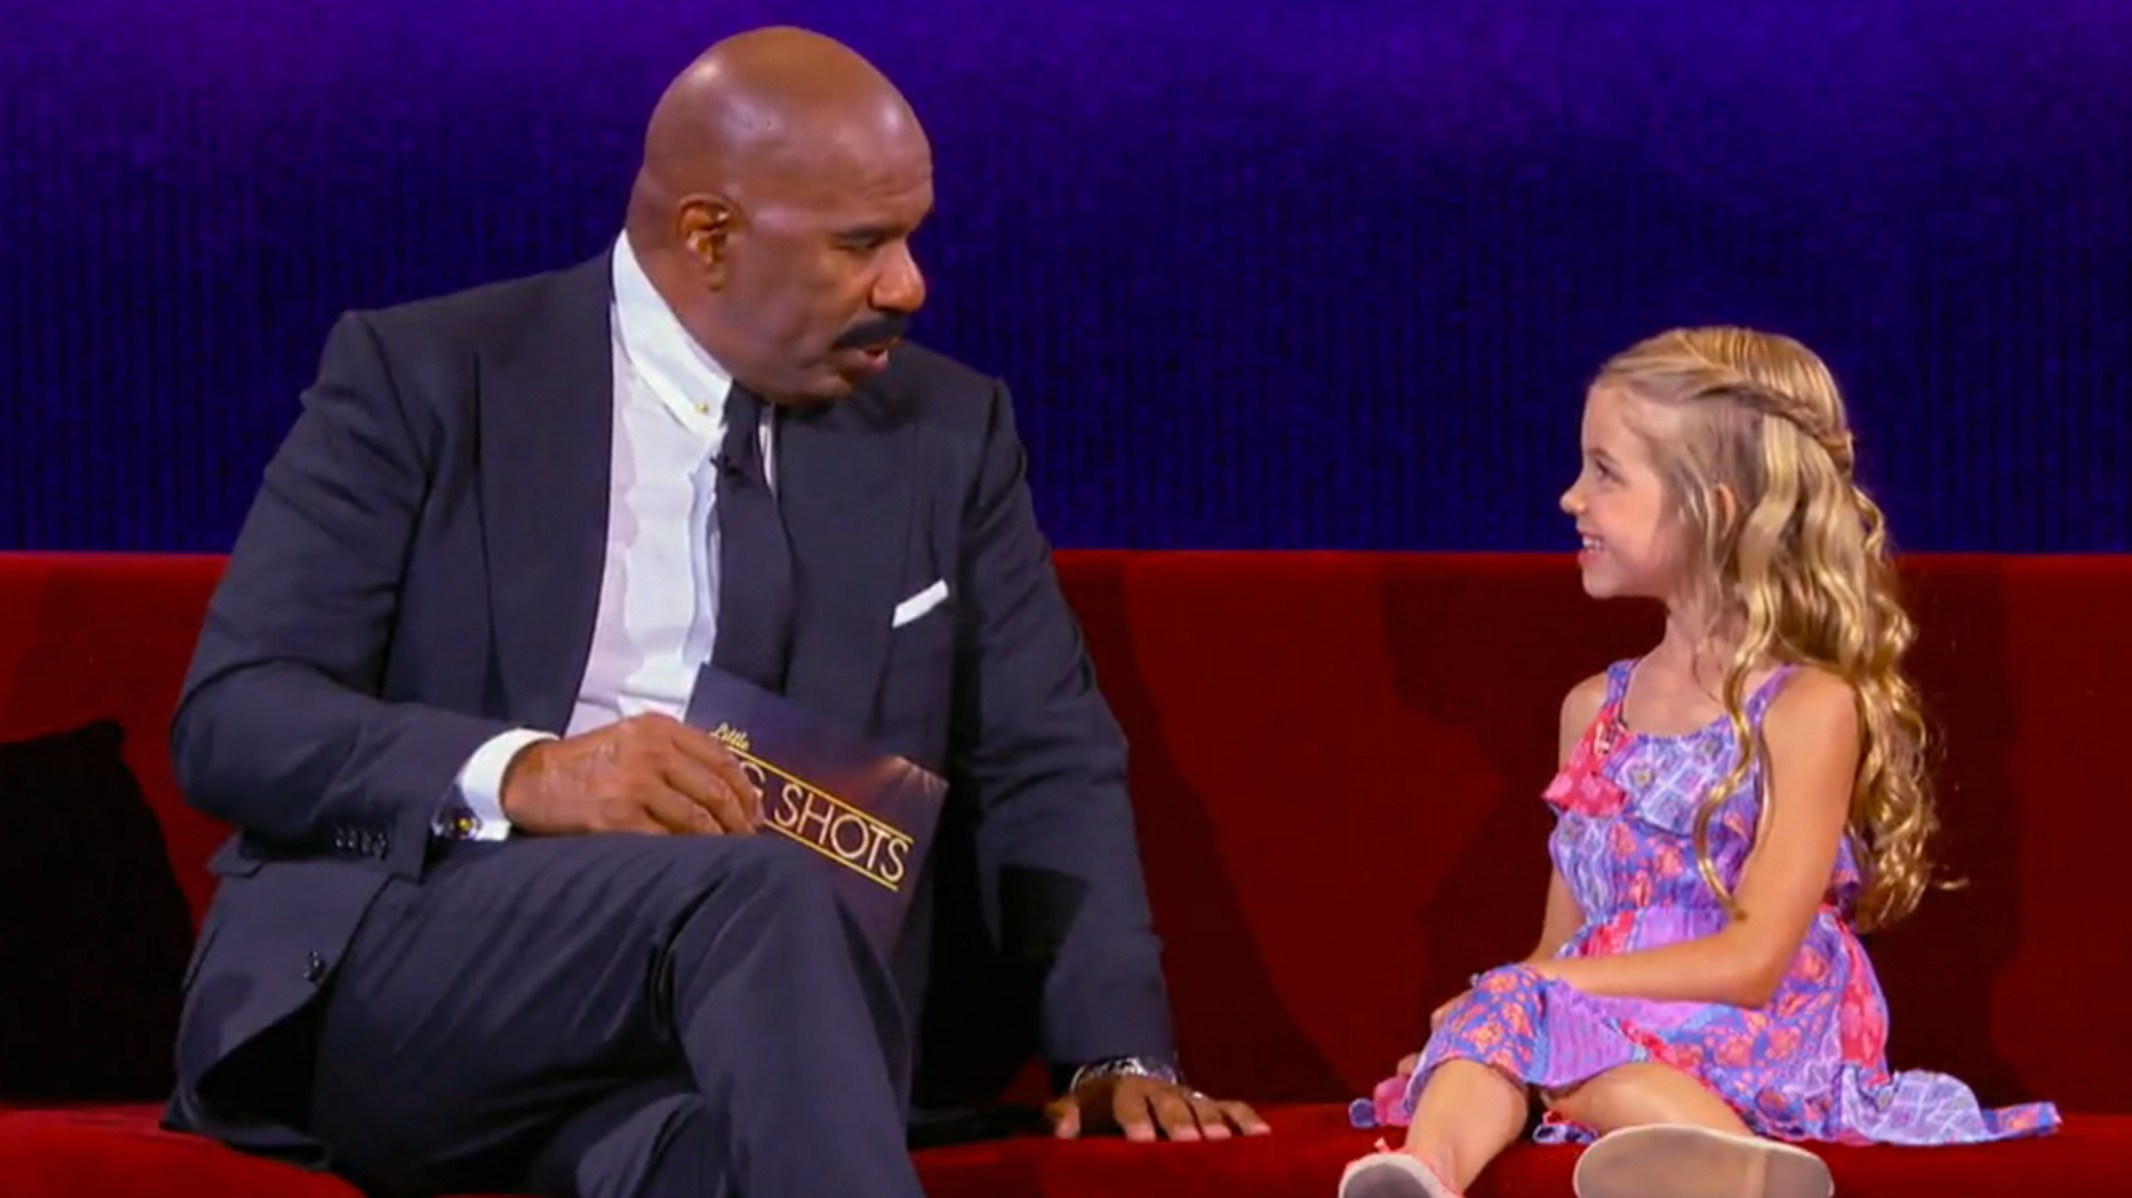 steve-harvey-girl-89bee74d-40d1-49ac-8761-ce8848e5b302